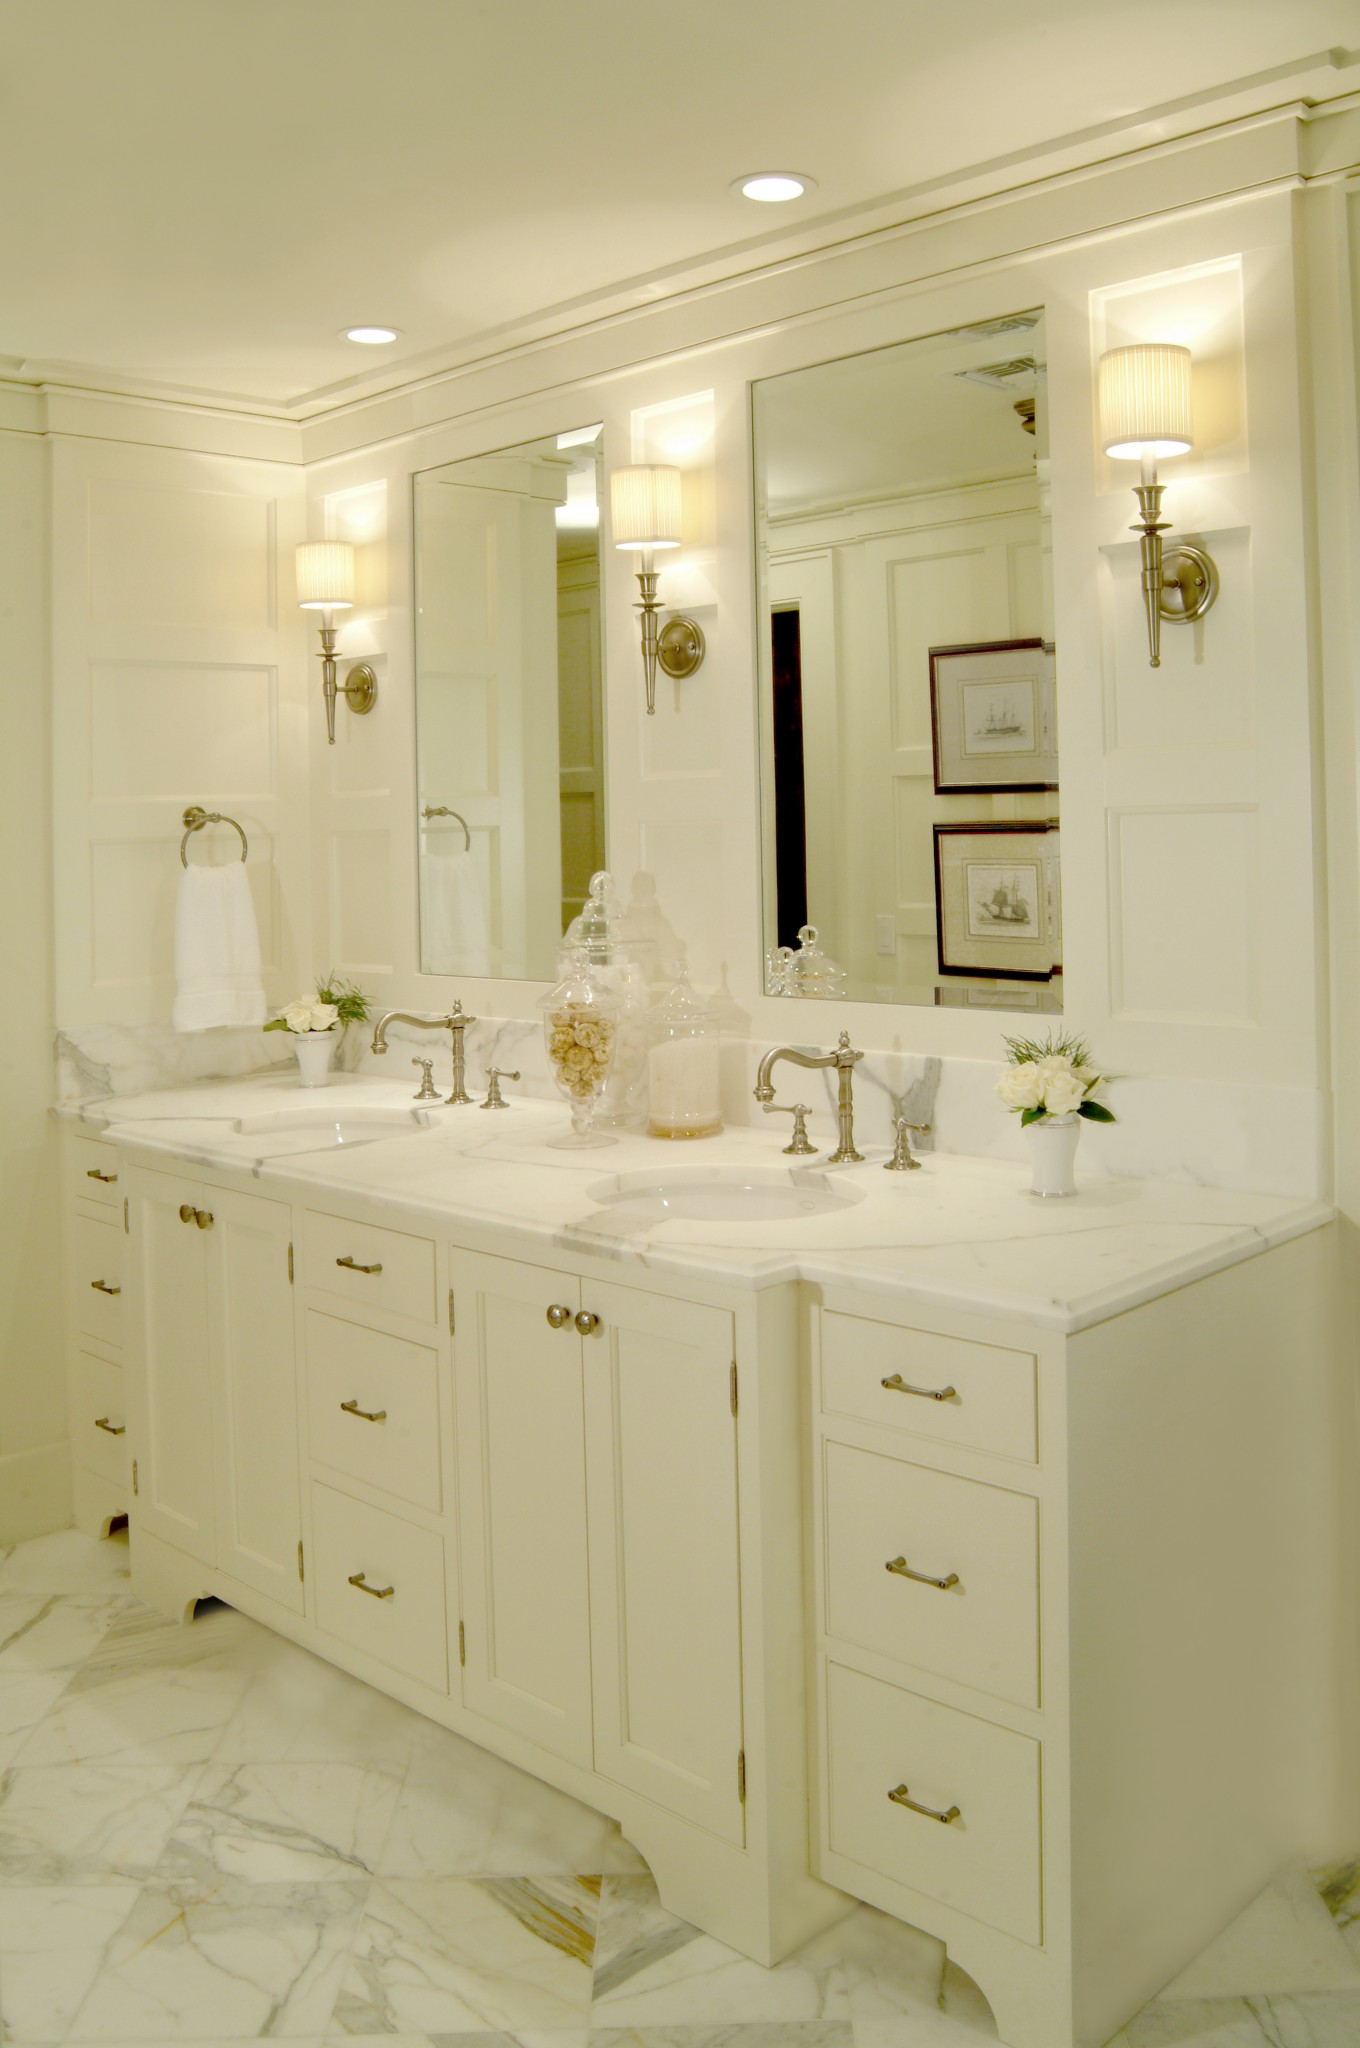 Master bathroom double sink vanity with marble floor tile and counter top. White painted wood wall paneling, recessed lighting and sconces for layered lighting plan